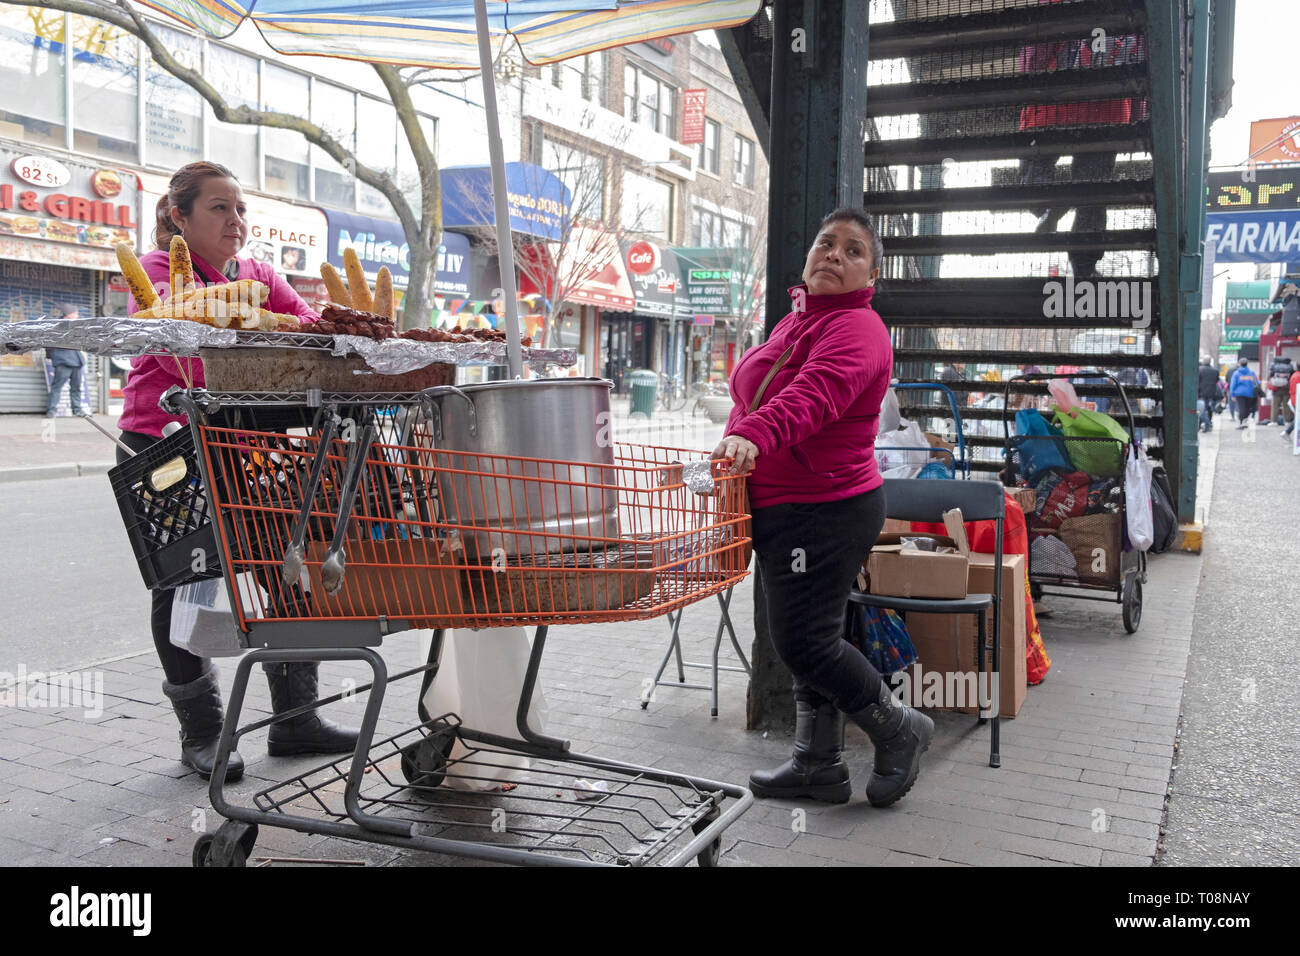 On a cold winter day, two women selling freshly grilled corn & grilled meat. On 82nd St. in Jackson Heights, Queens, NYC under the #7 train stairway. - Stock Image